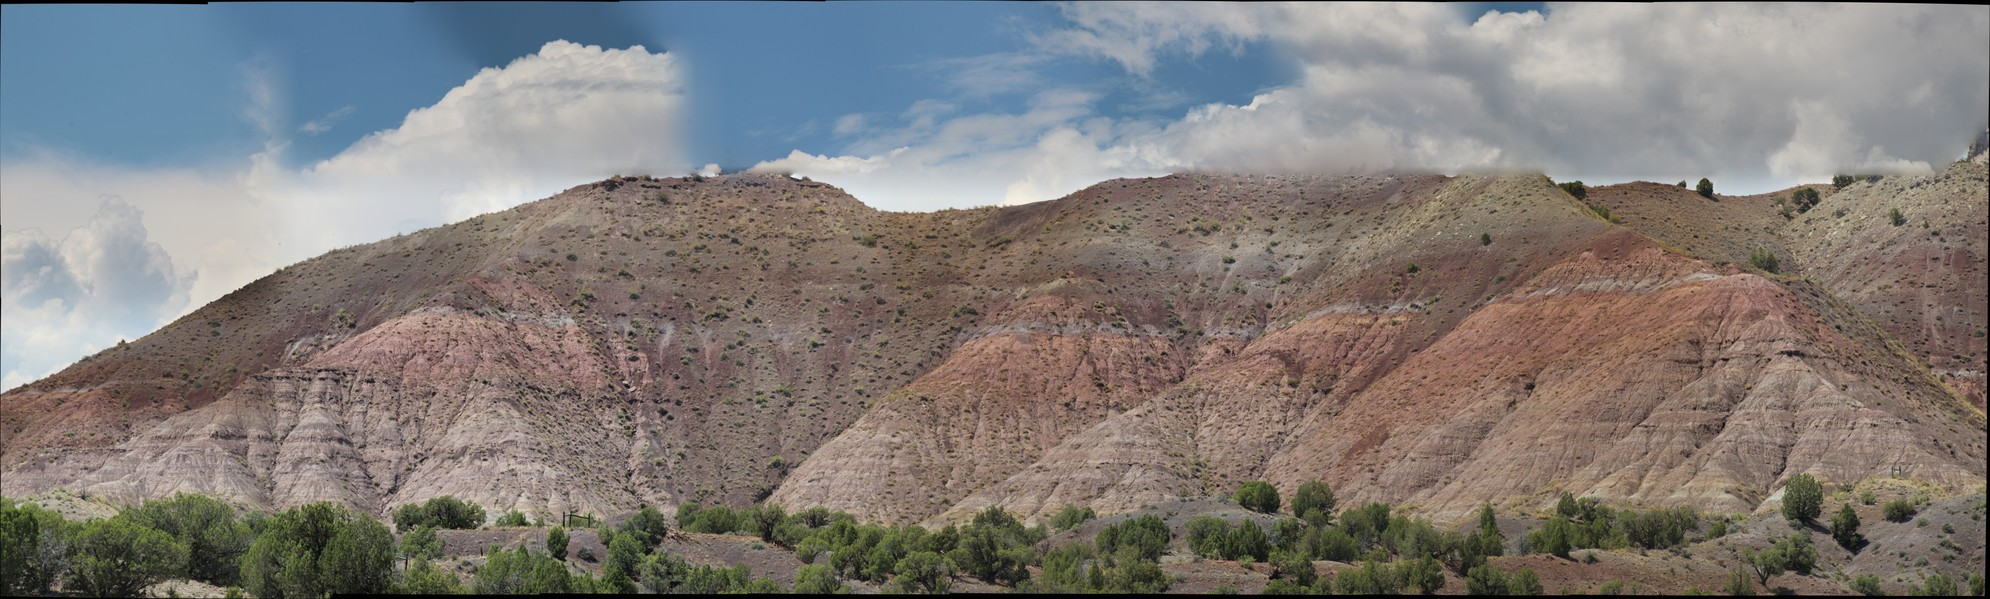 Wasatch Formation: Shire member, CO